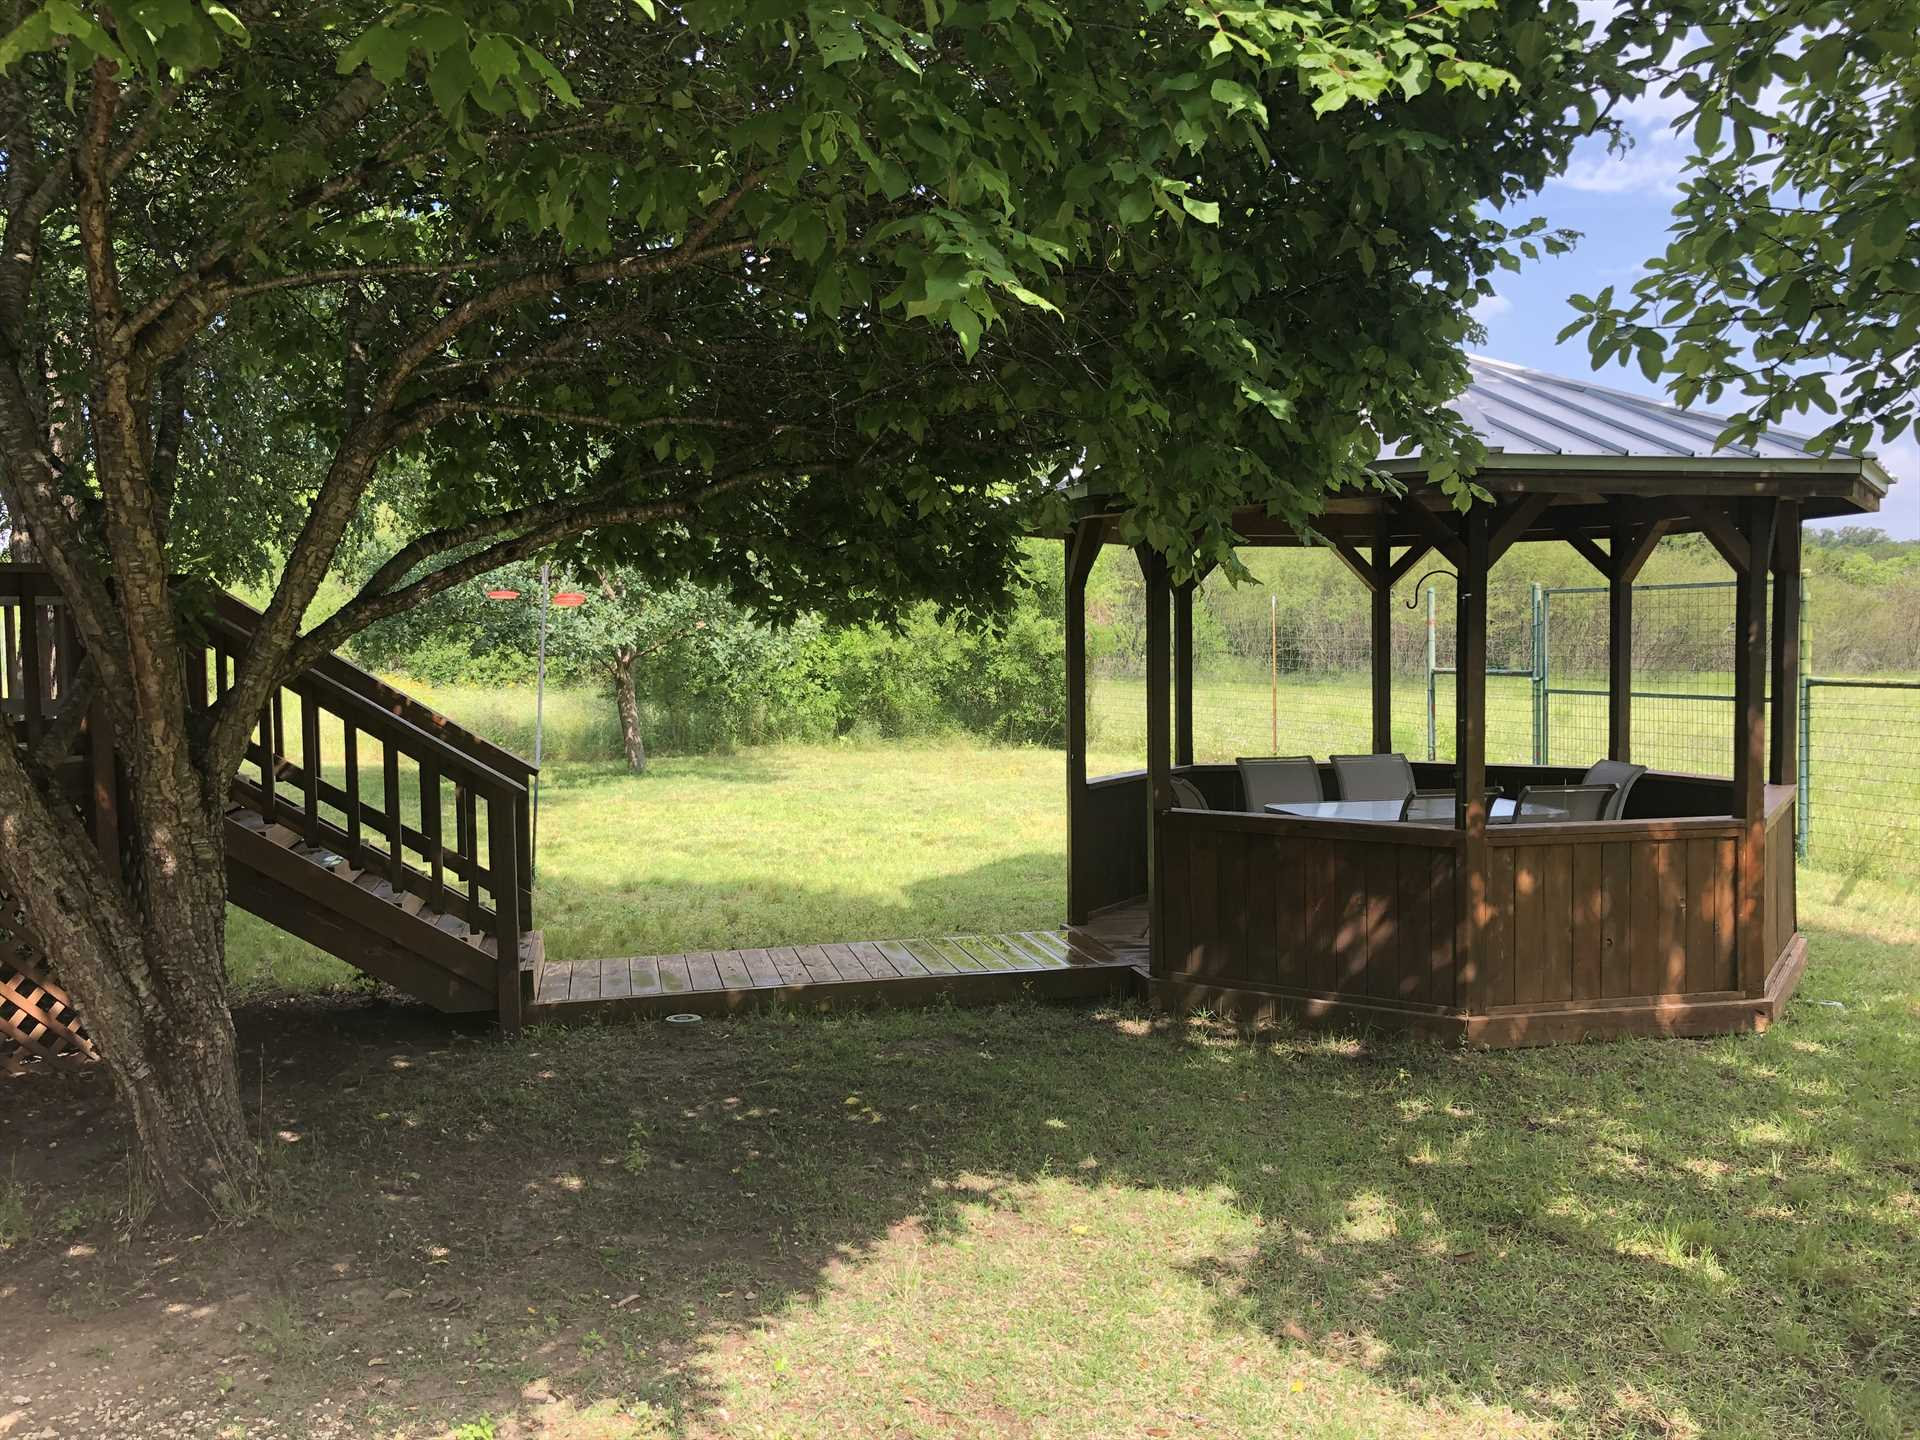 The open-air gazebo has outdoor furniture, so everyone can relax under the shade of its peaked roof. It's a great place to enjoy a meal prepared on the gas grill!